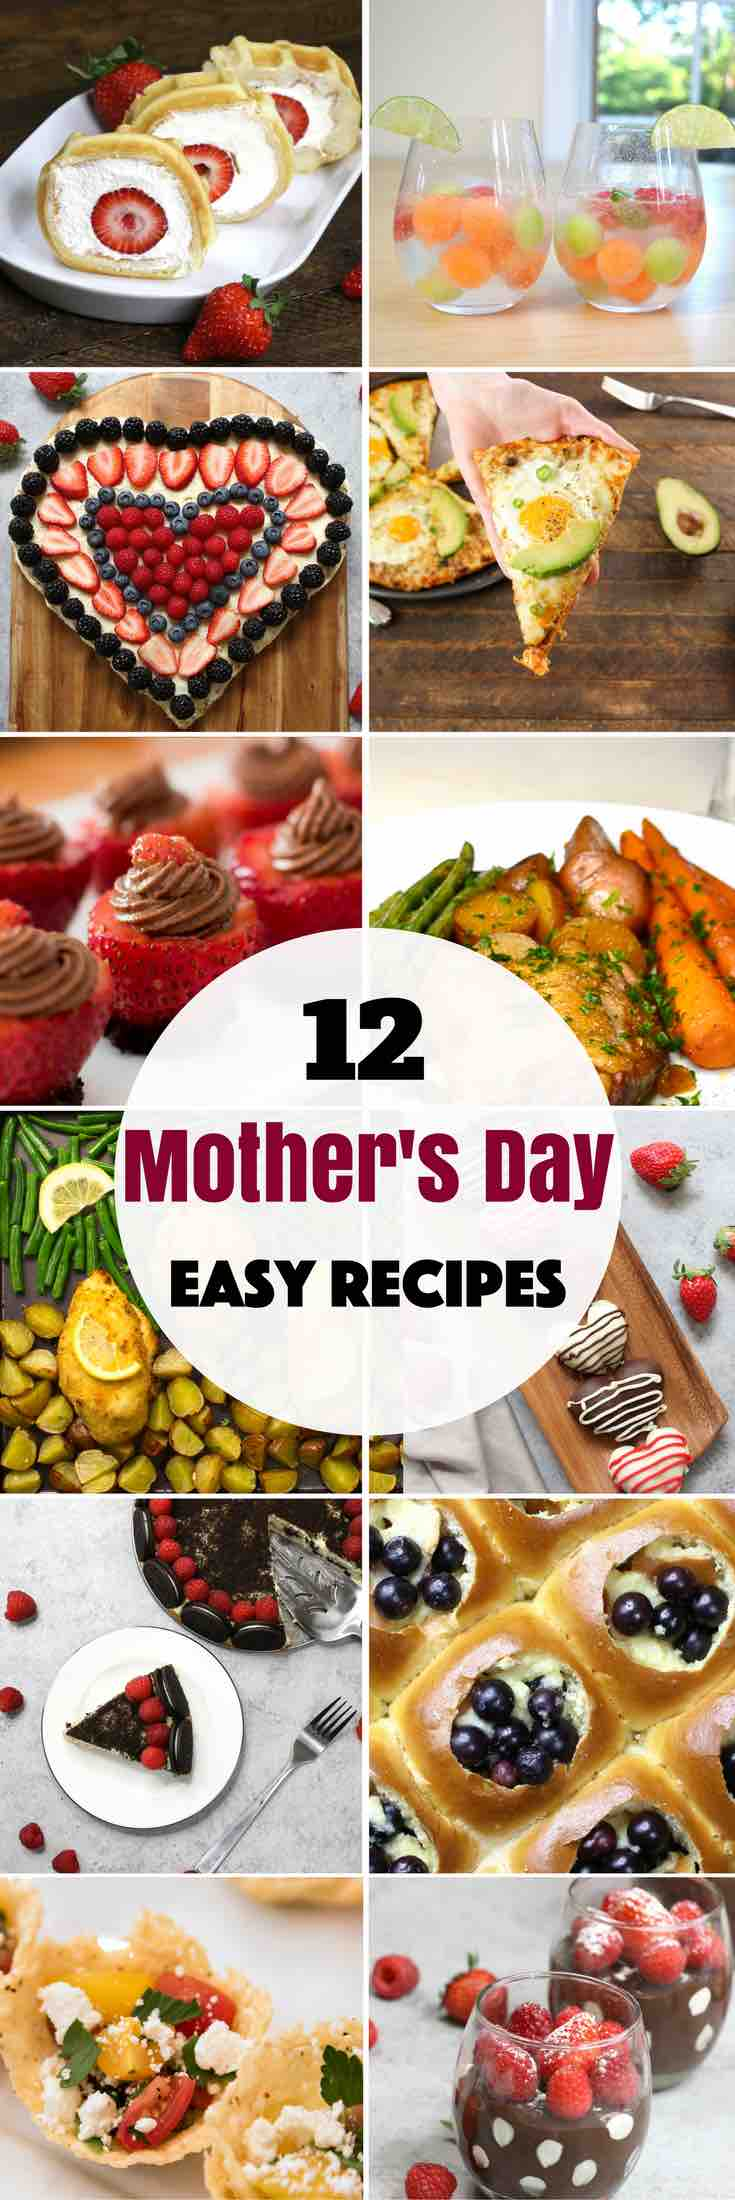 12 Mother's Day Recipes everyone will enjoy including appetizers, main courses and desserts! Show your gratitude and say thanks with a homemade meal, whether you're serving brunch, lunch, or dinner! #mothersday